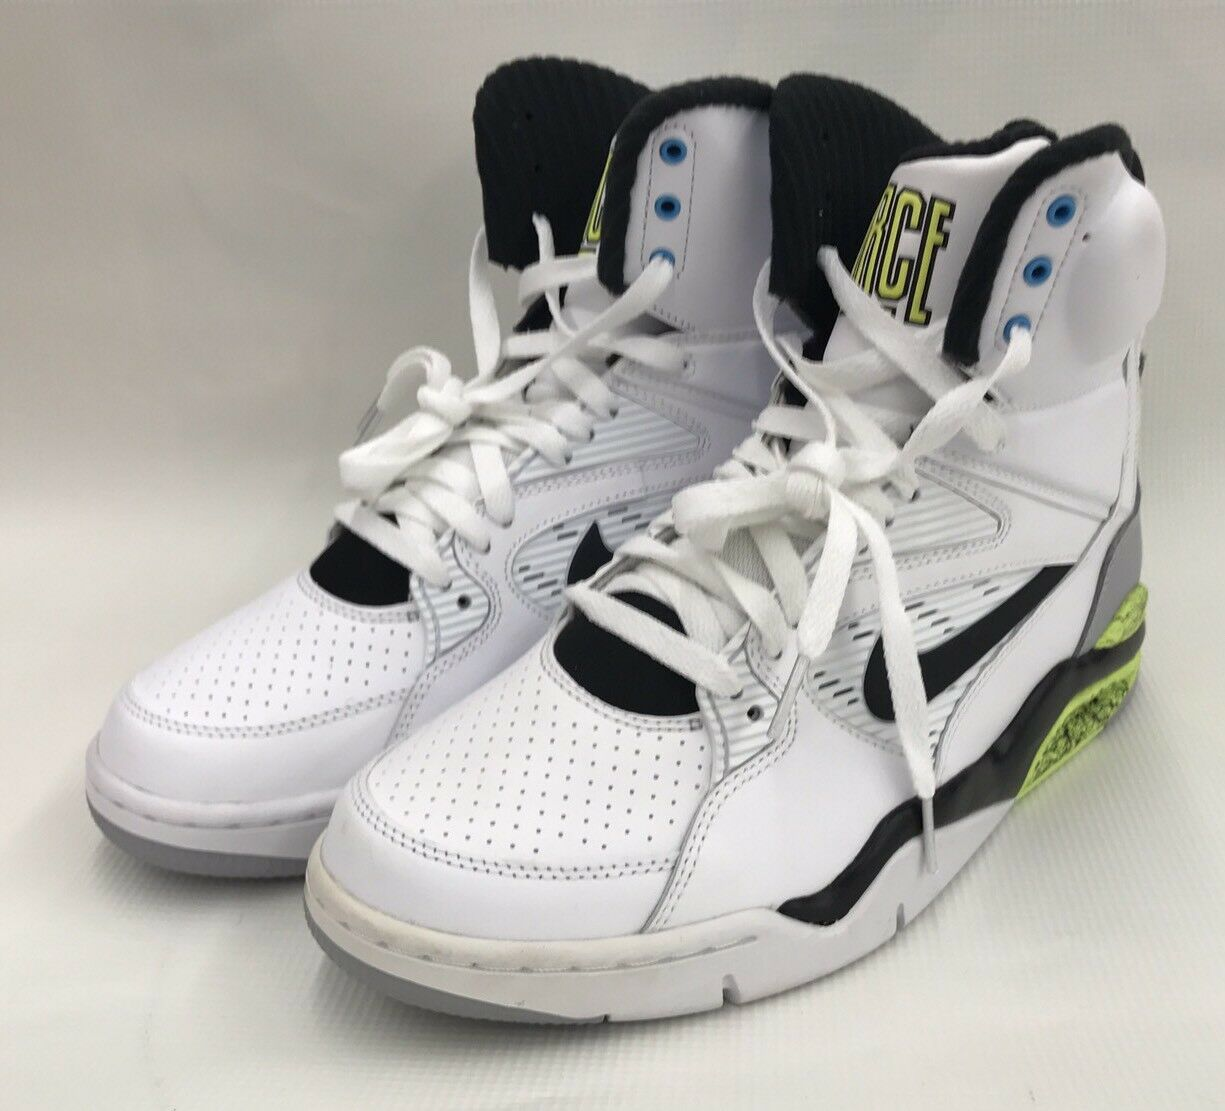 Nike Command Force Billy Hoyle White Men Can't Jump Pump Shoe Size 8.5 BNIB